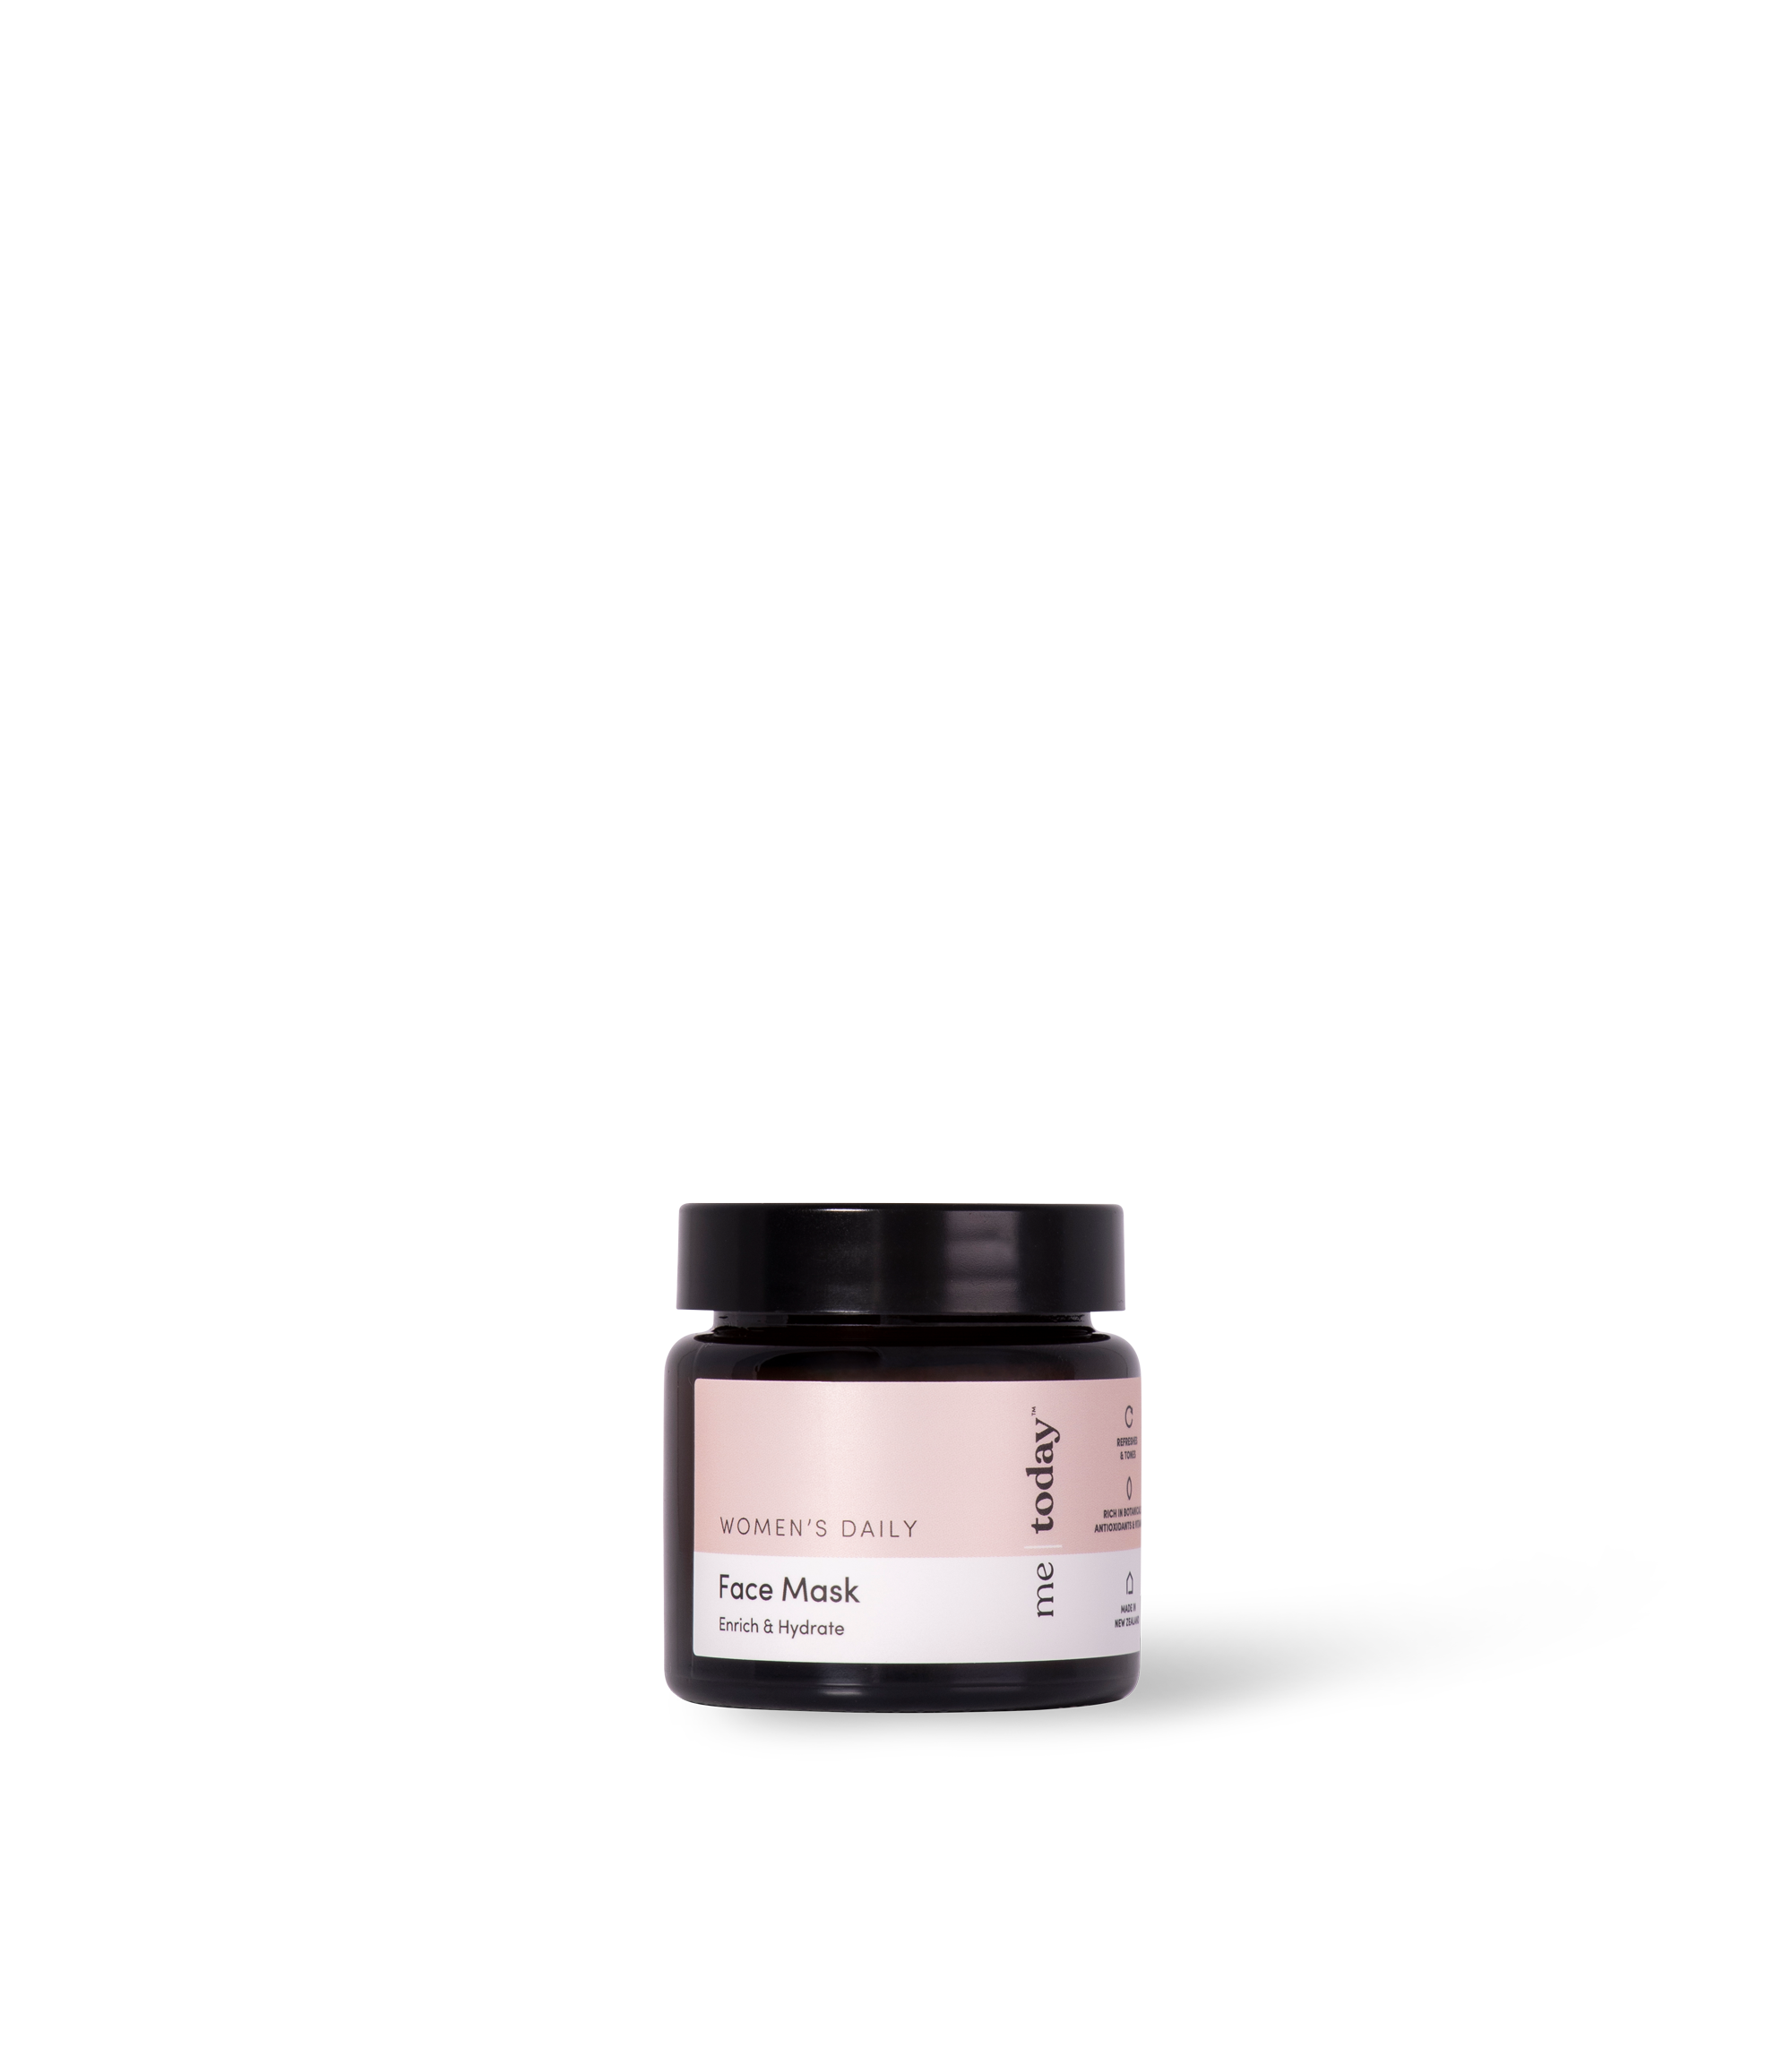 me | today Women Daily Face Mask 50ml